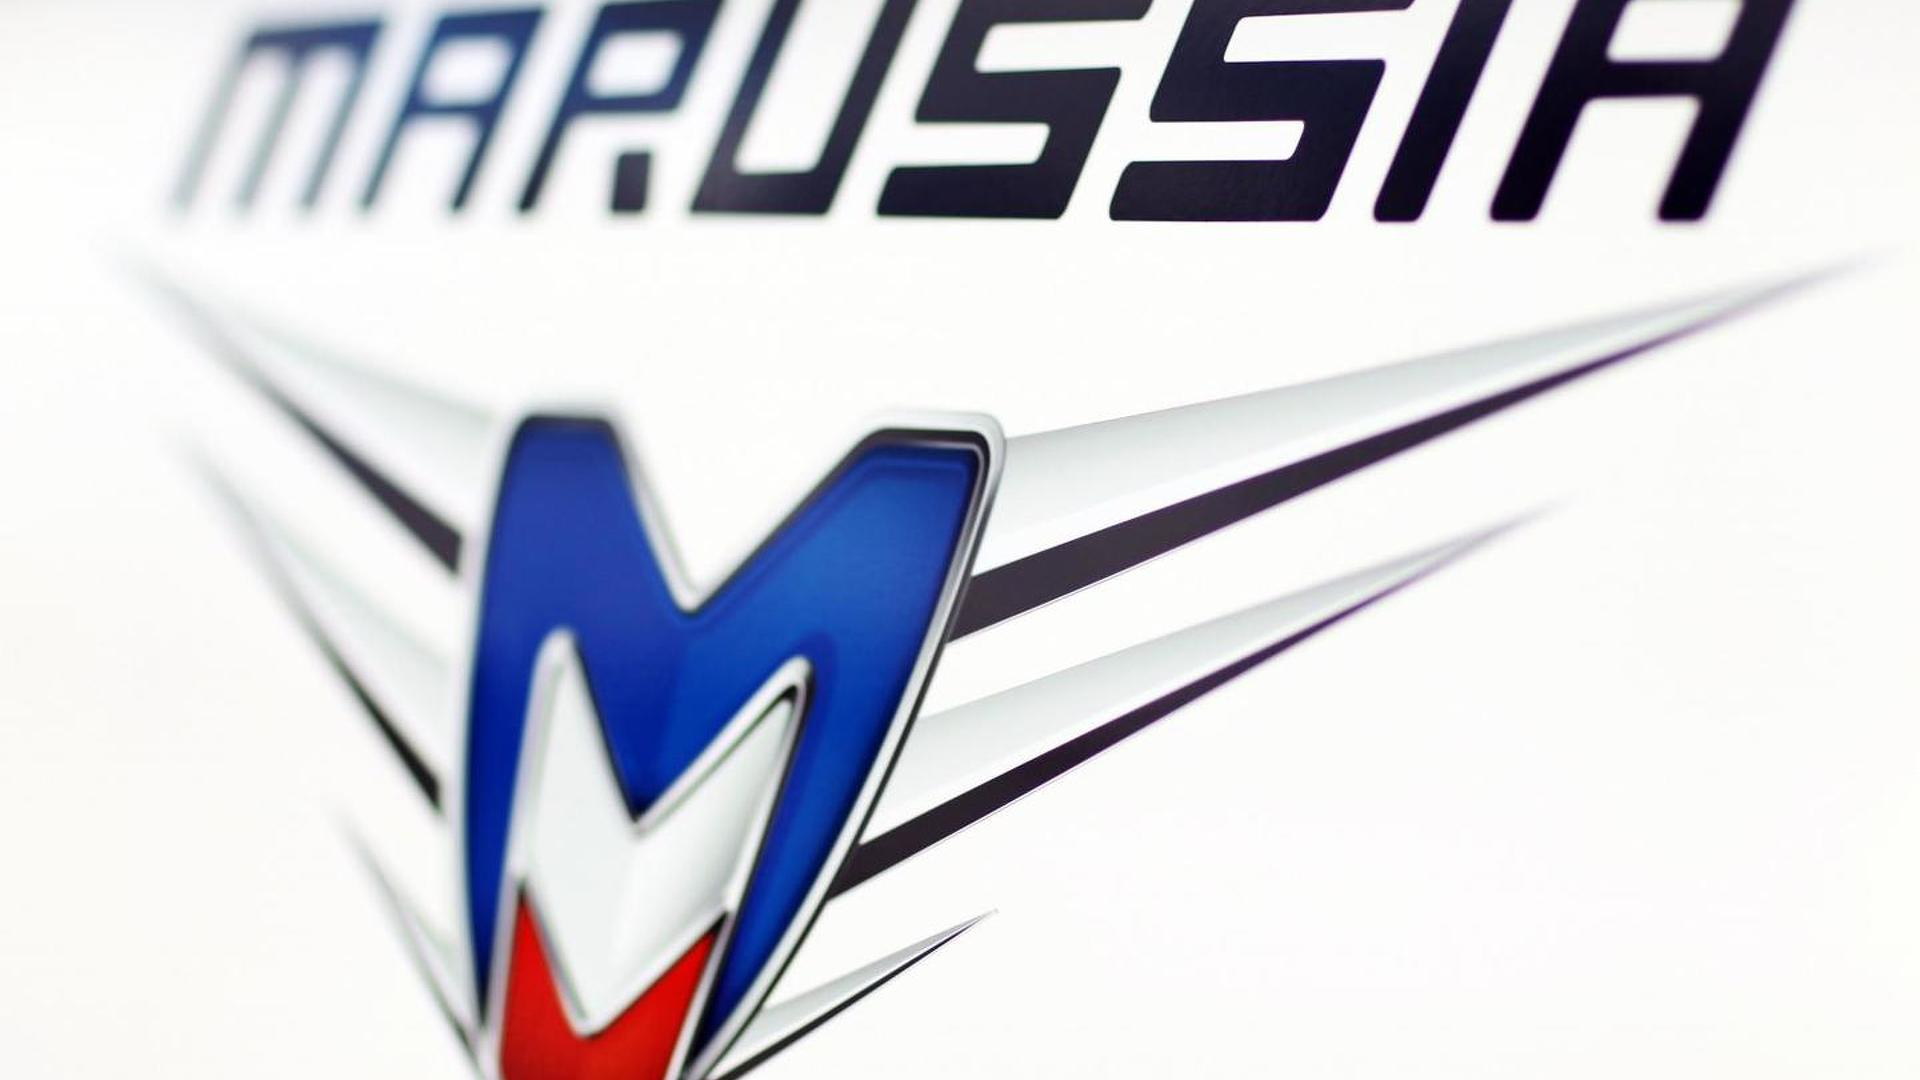 No name change after ownership split - Marussia